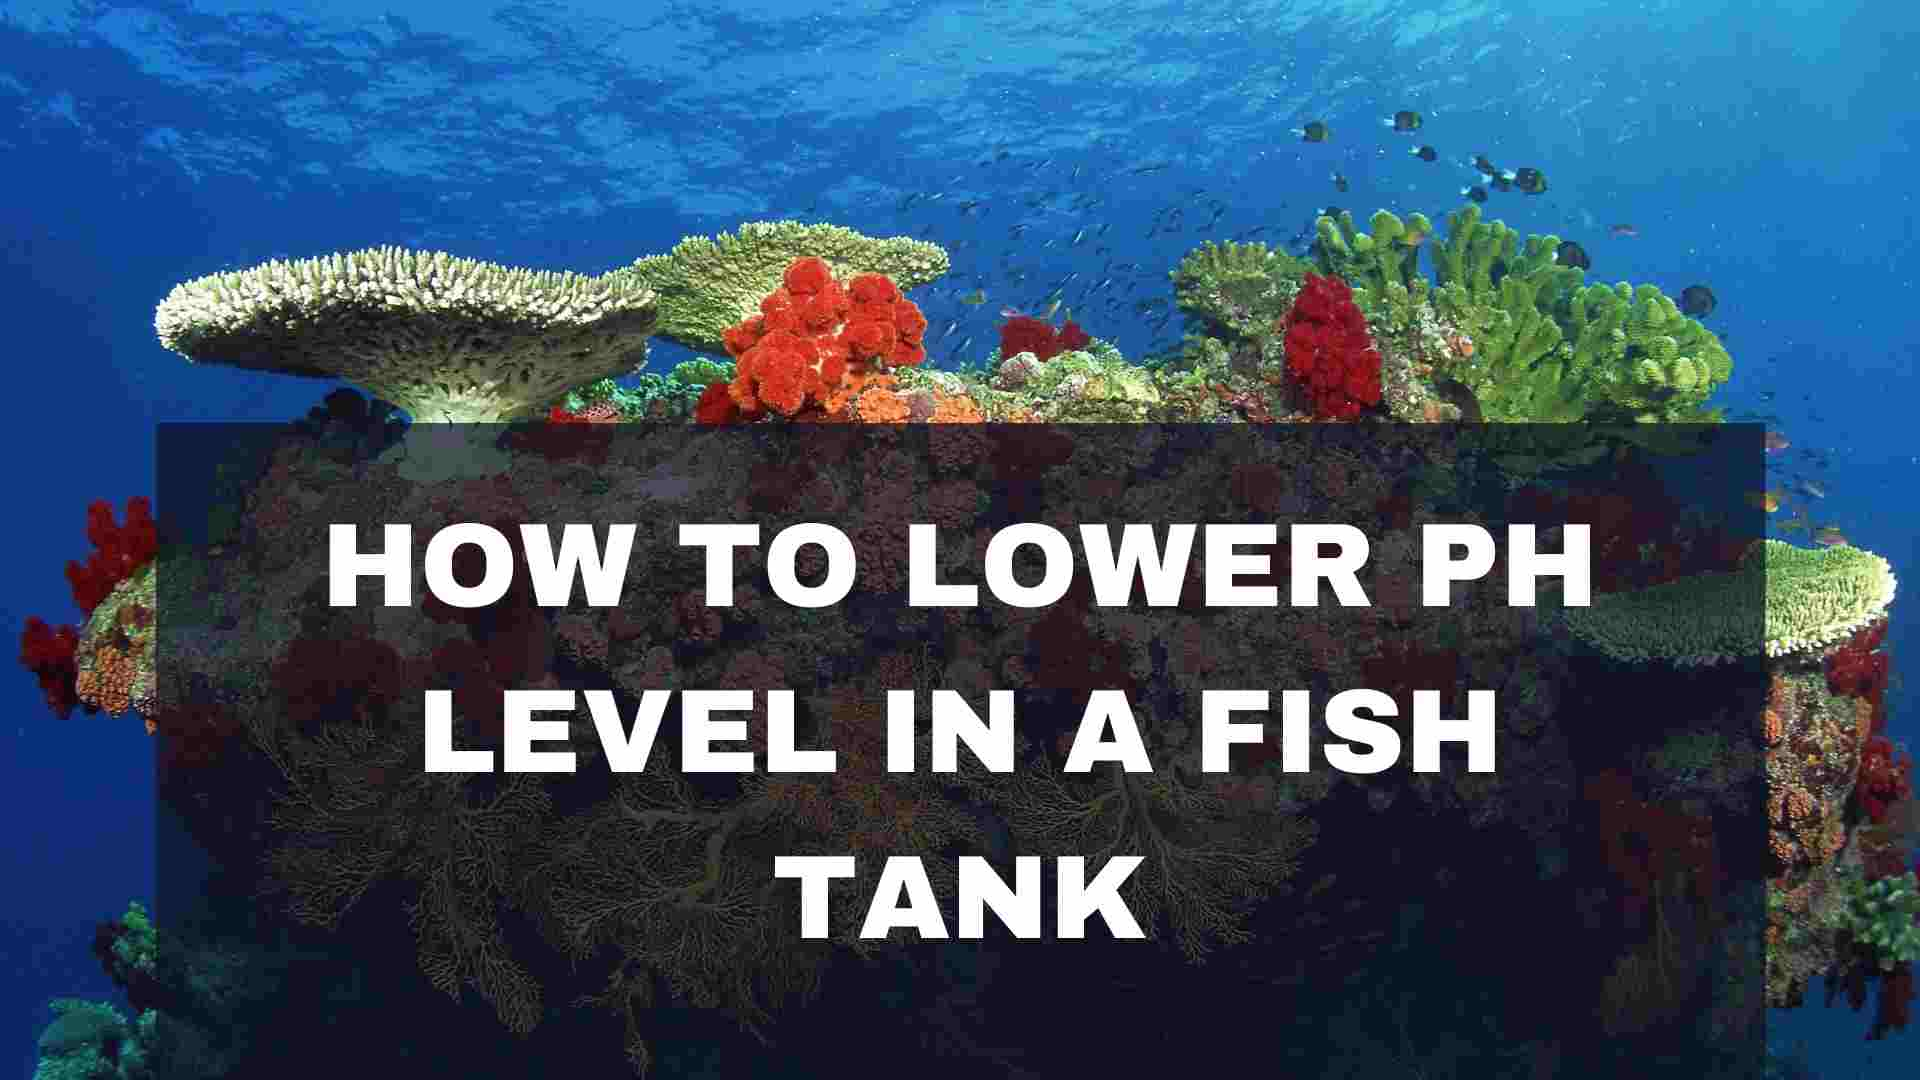 Steps for How to Lower pH Level in a Fish Tank